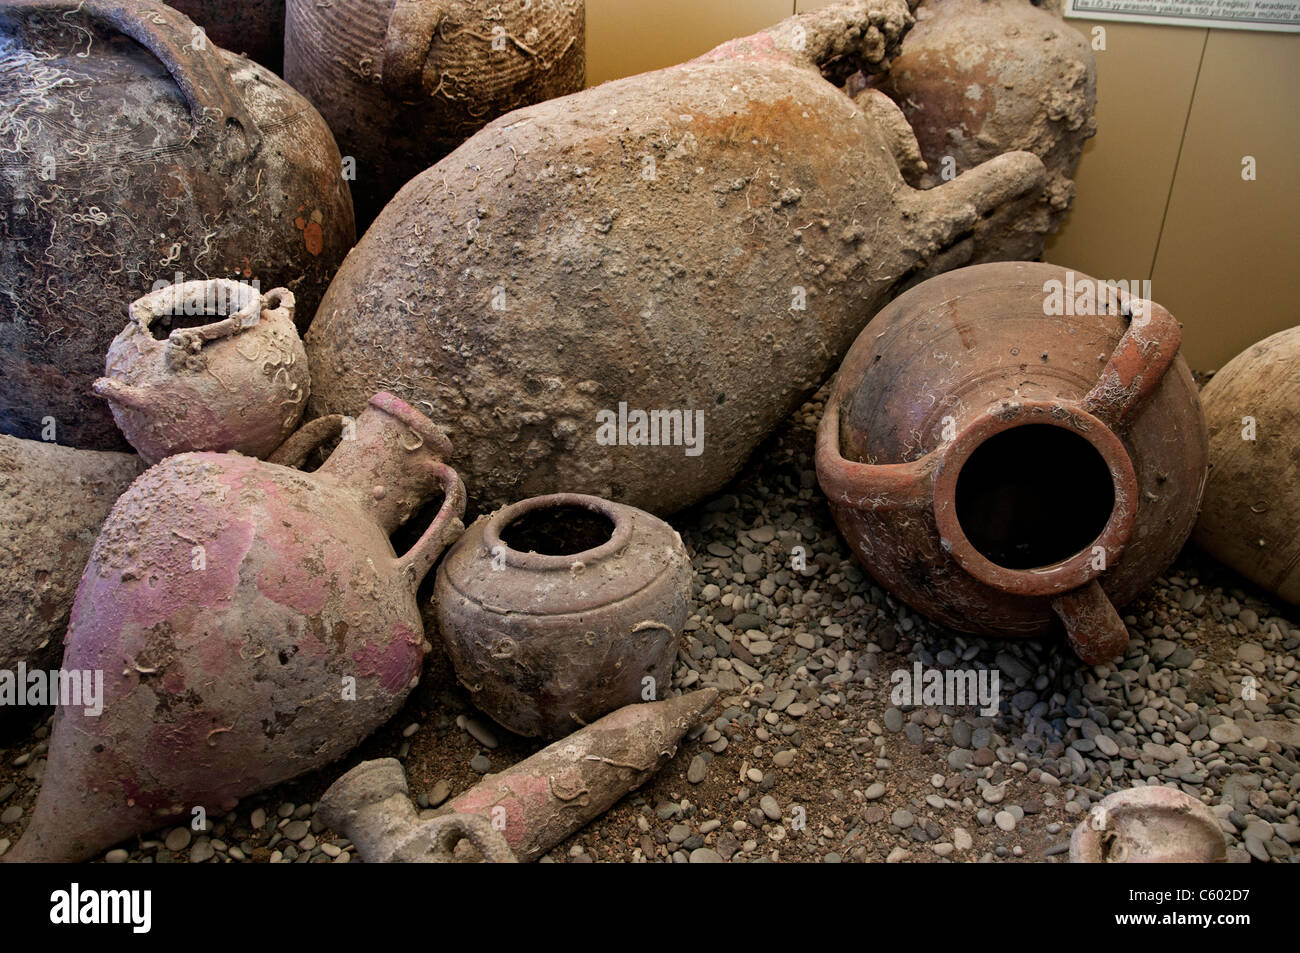 old ancient Greek Roman amphora pottery ceramic old ancient terracotta found on Sea Bottom - Stock Image